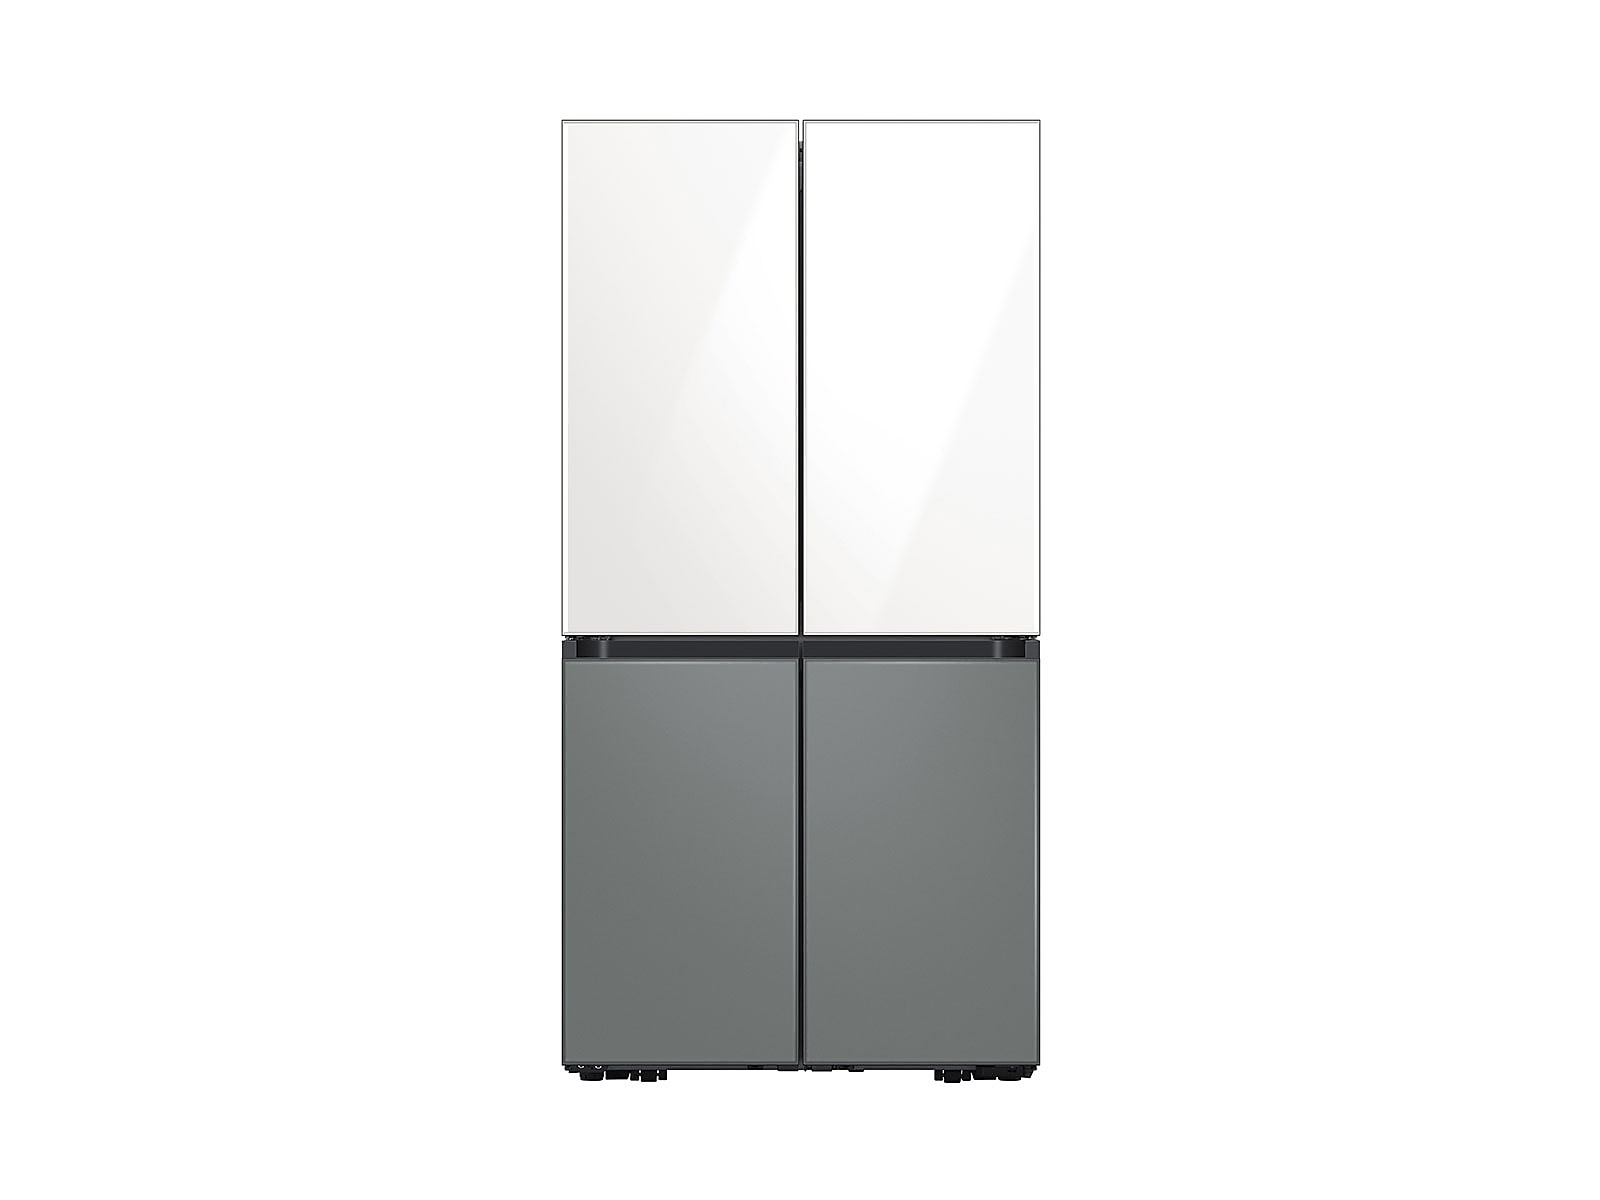 Samsung coupon: Samsung 29 cu. ft. Smart BESPOKE 4-Door Flex Refrigerator with Customizable Panel Colors in White Glass Top & Grey Glass Bottom(BNDL-1620768726678)